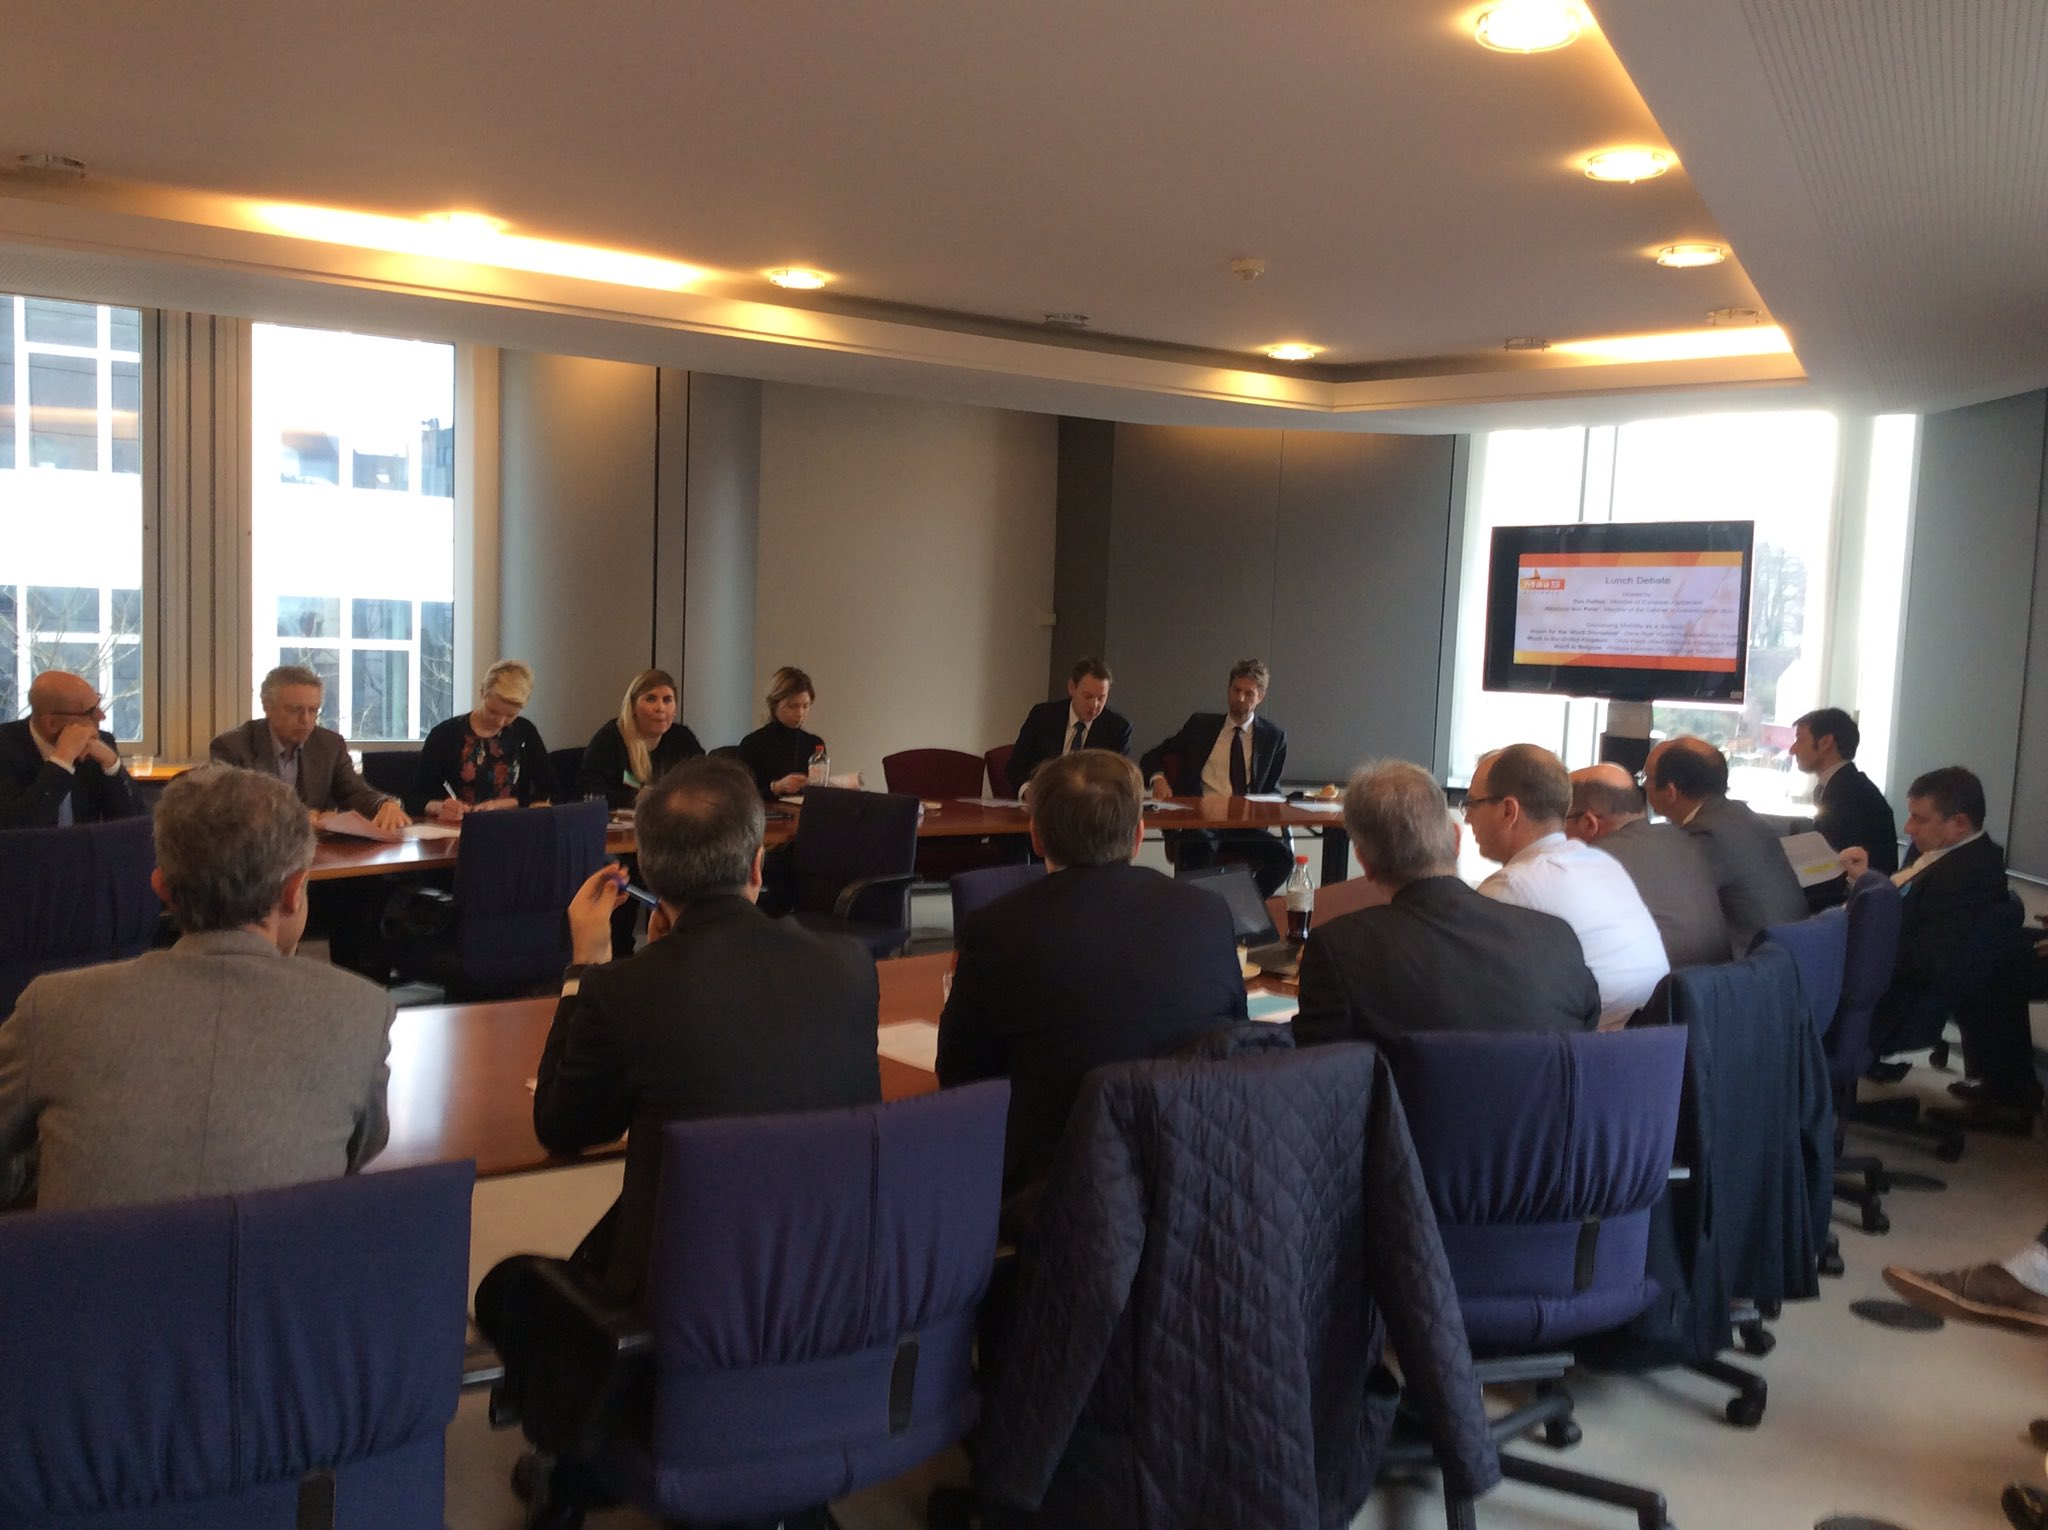 MaaS Alliance welcomed at the European Parliament